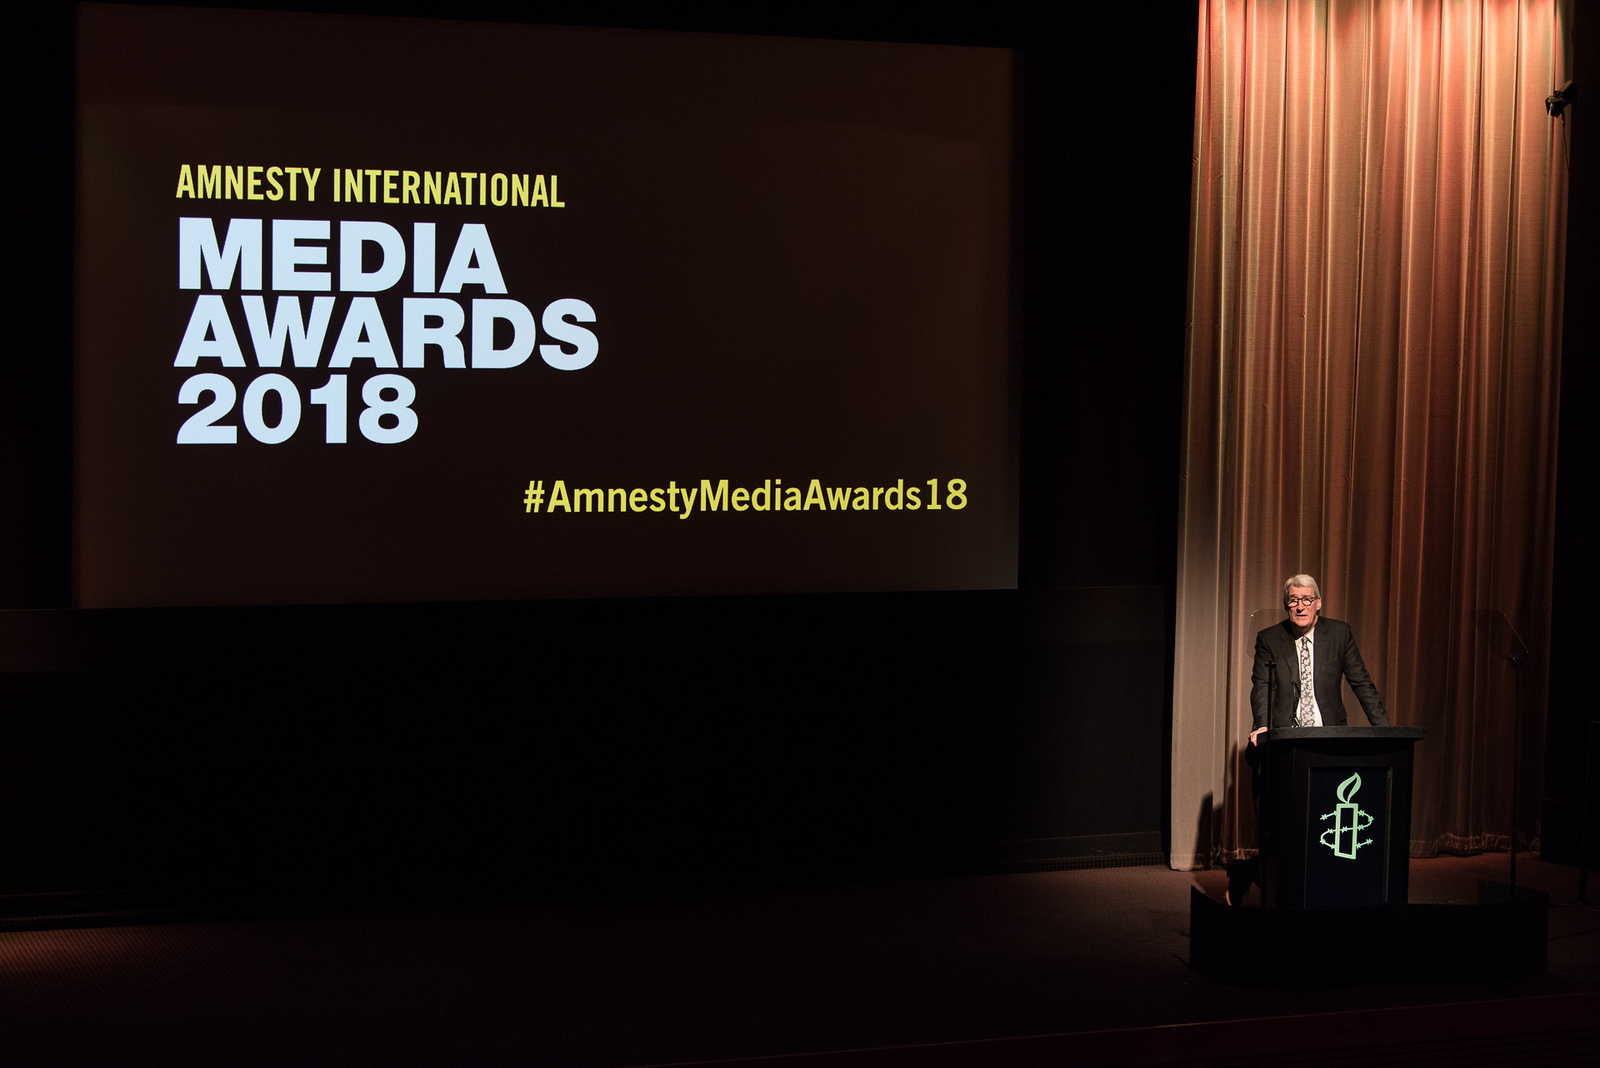 Jeremy Paxman at the Amnesty Media Awards 2018